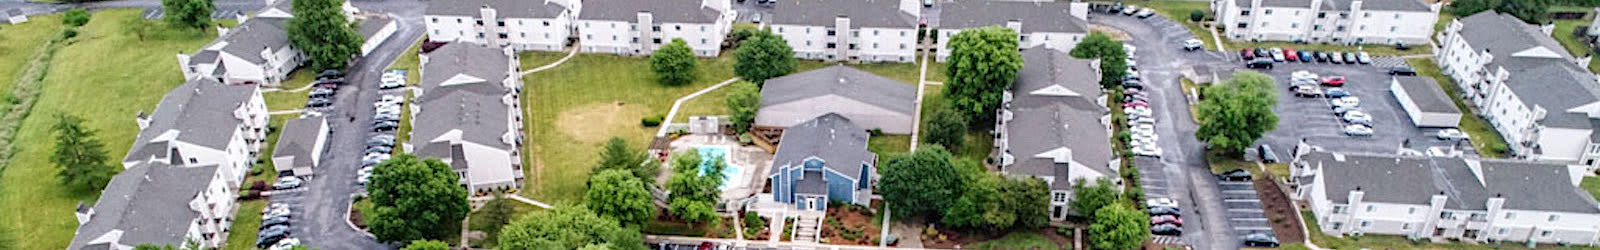 Apply Online at Chatham Hills Apartments